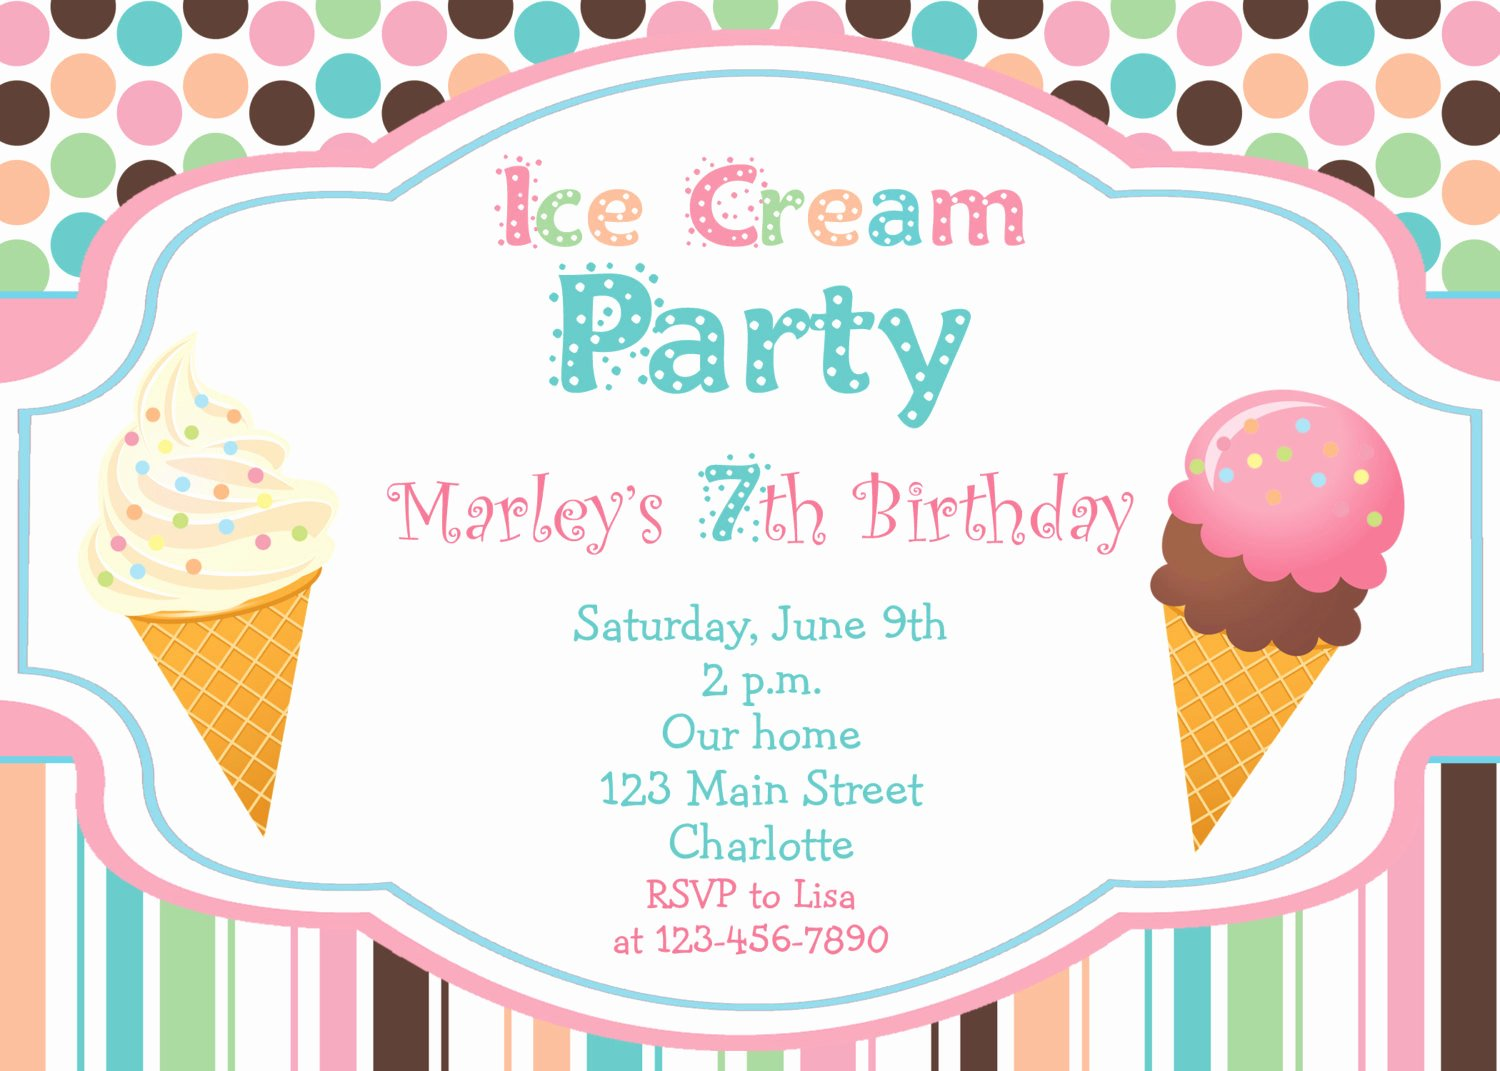 Ice Cream social Invite Template Fresh Ice Cream Party Birthday Invitation Ice by thebutterflypress